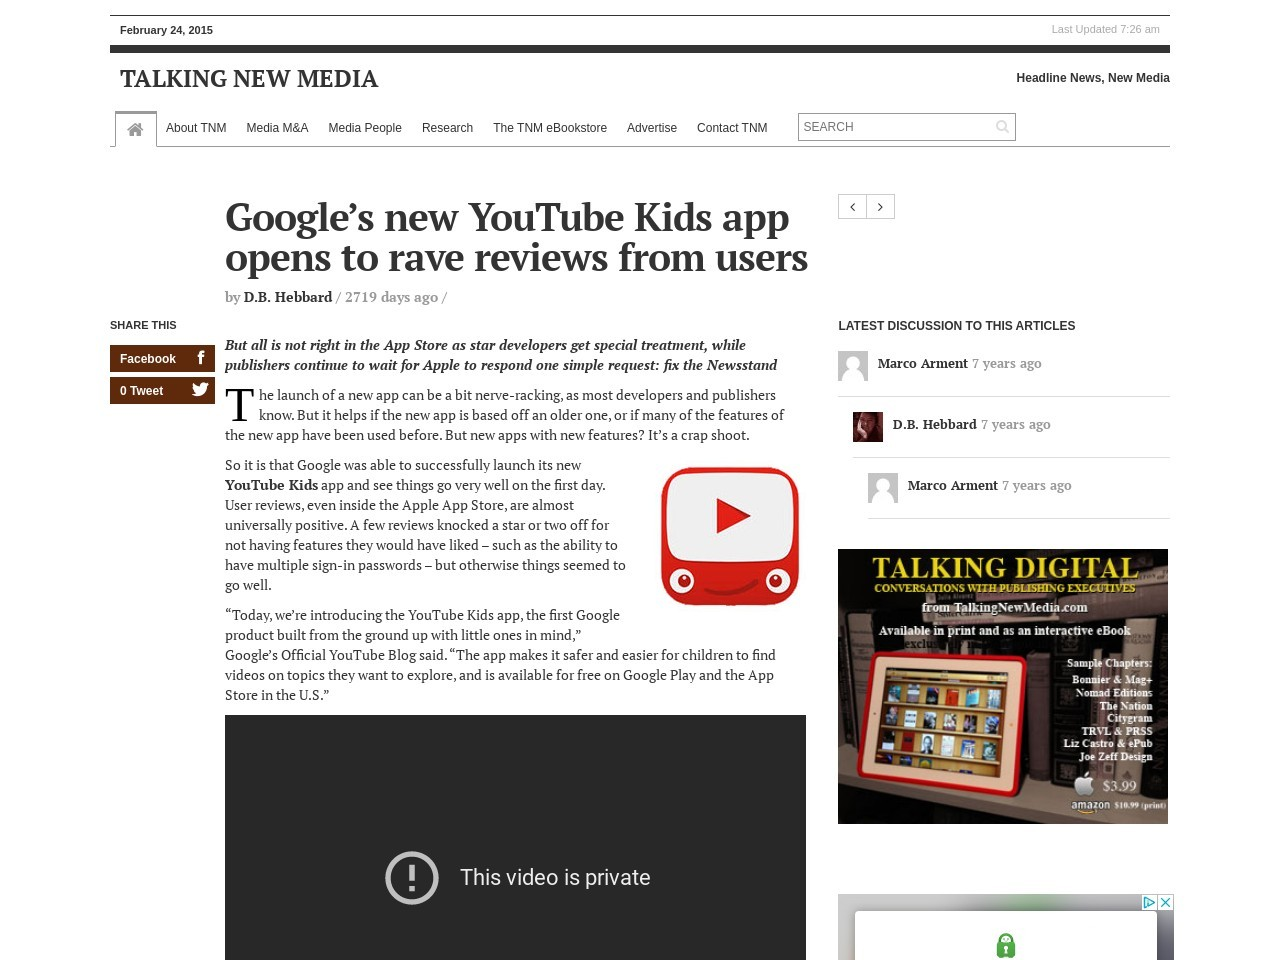 Google's new YouTube Kids app opens to rave reviews from users